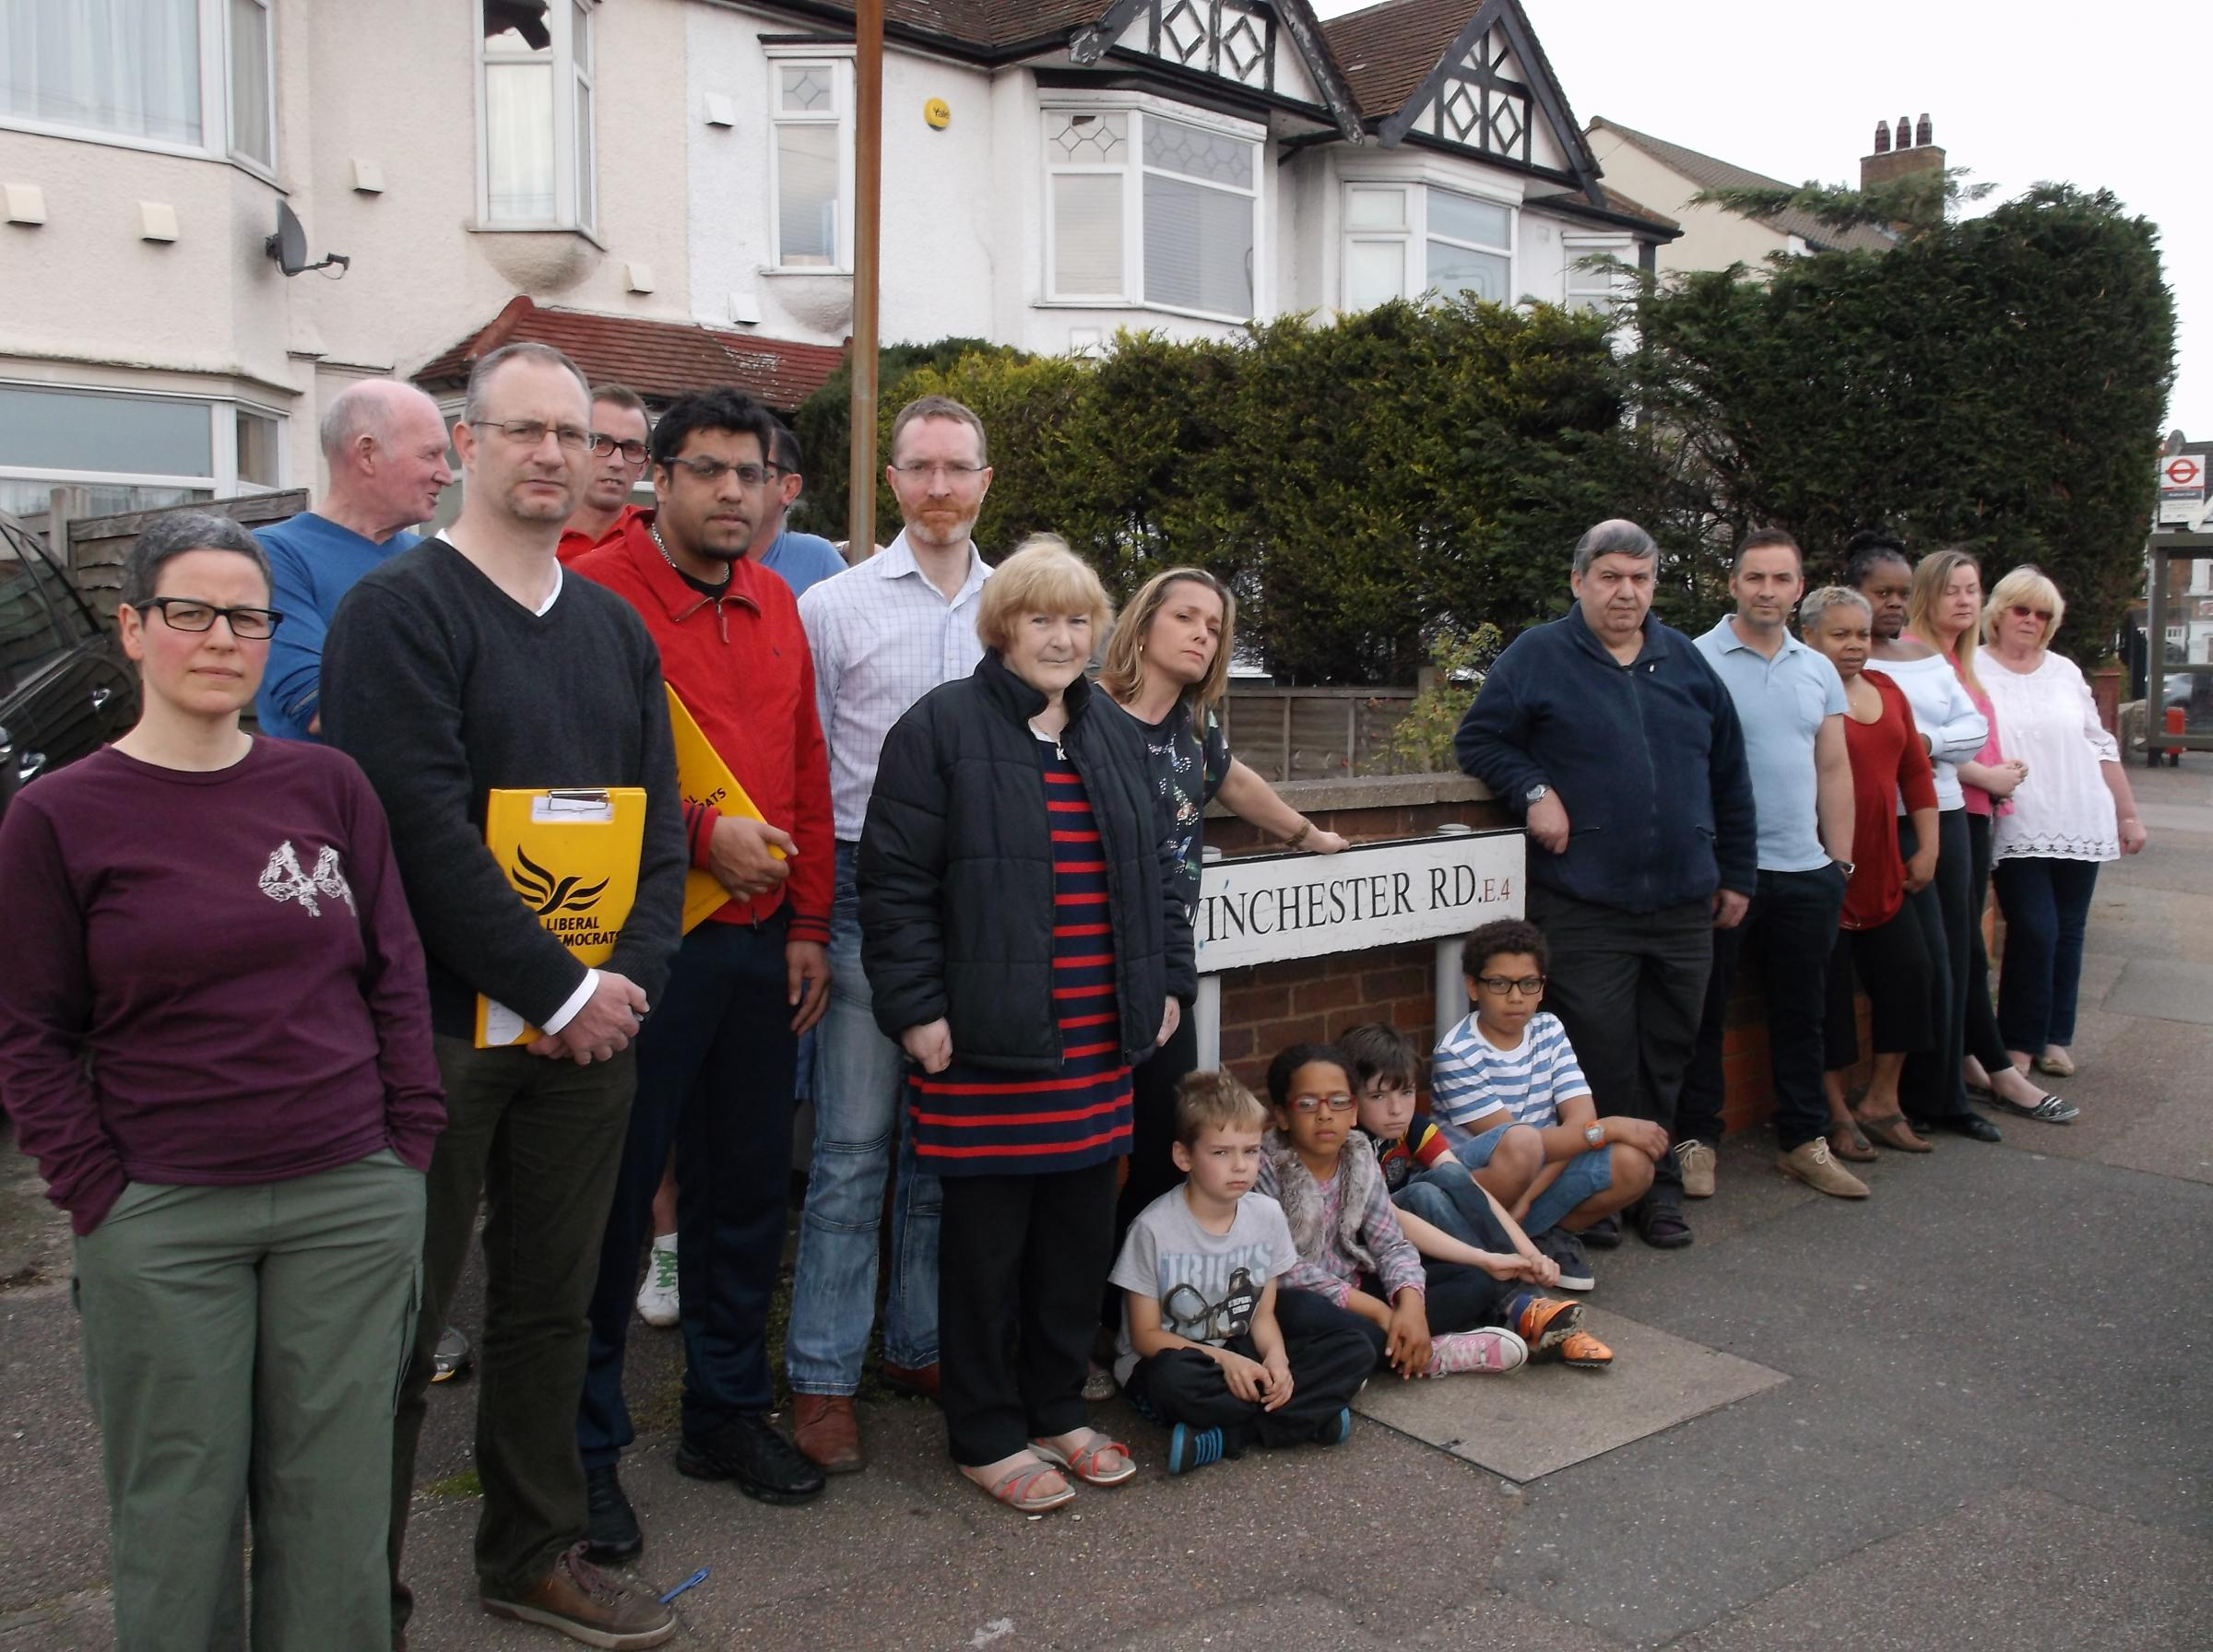 Karen Murray (centre) with concerned residents at the top end of Winchester Road